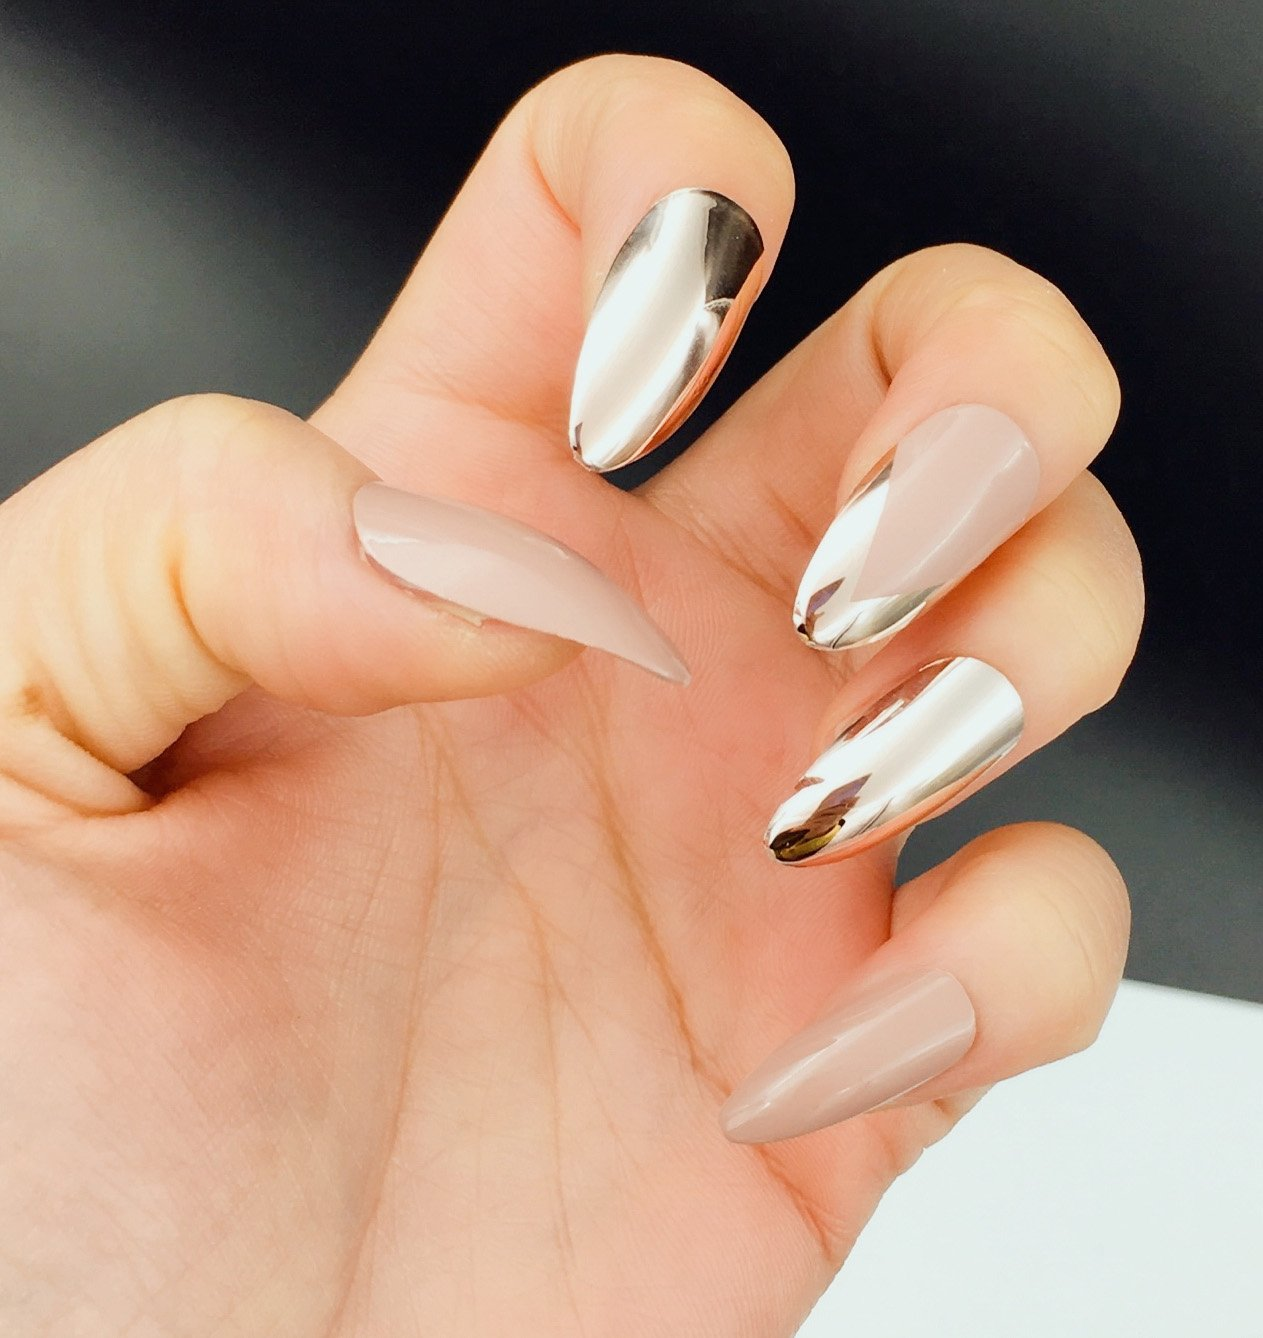 Amazon.com : YUNAI Rose Gold Almond Fake Nails Three Desinged False Nail Tips set Medium/Long Artificial Nails for Women : Beauty